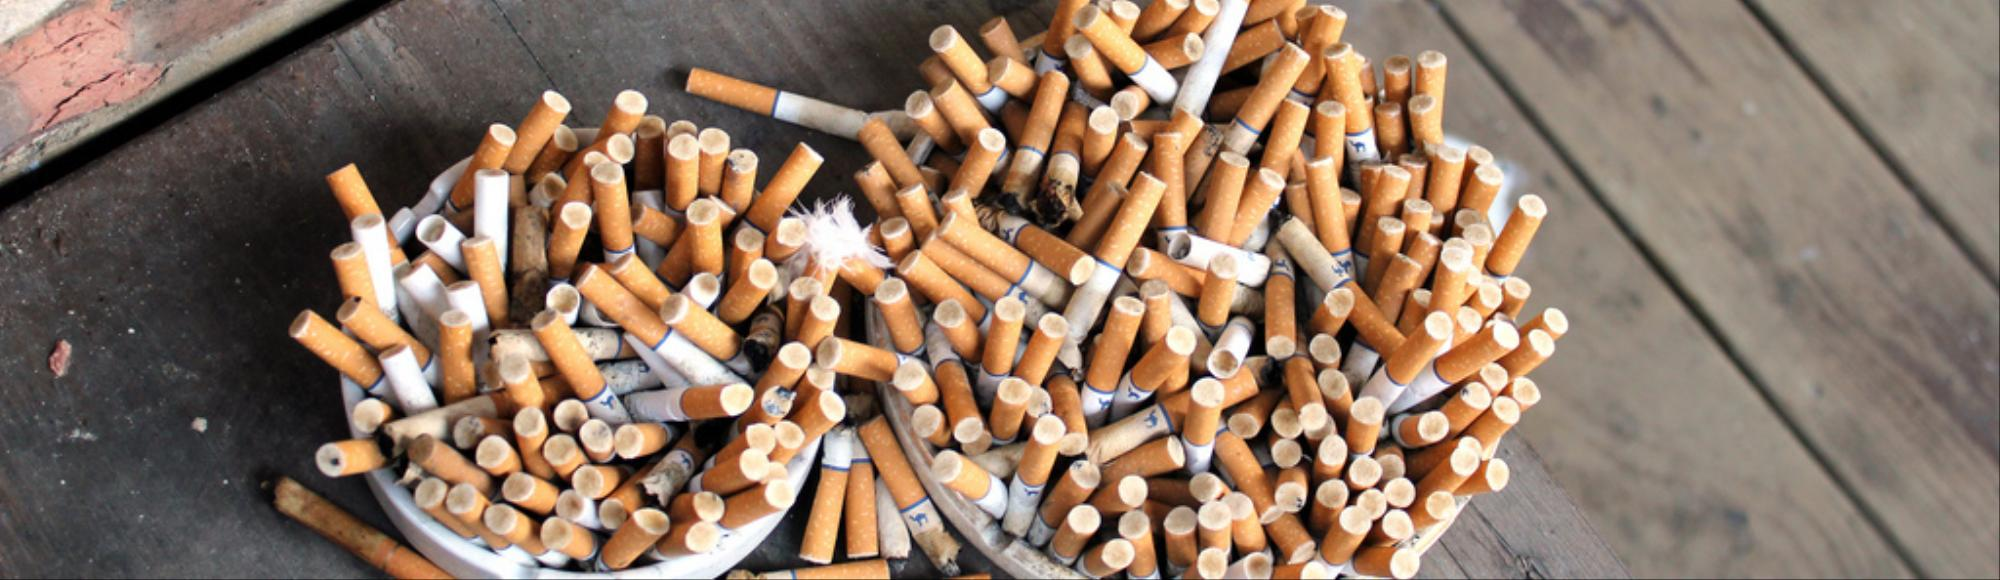 Millions of Discarded Cigarette Butts Are Poisoning the Planet